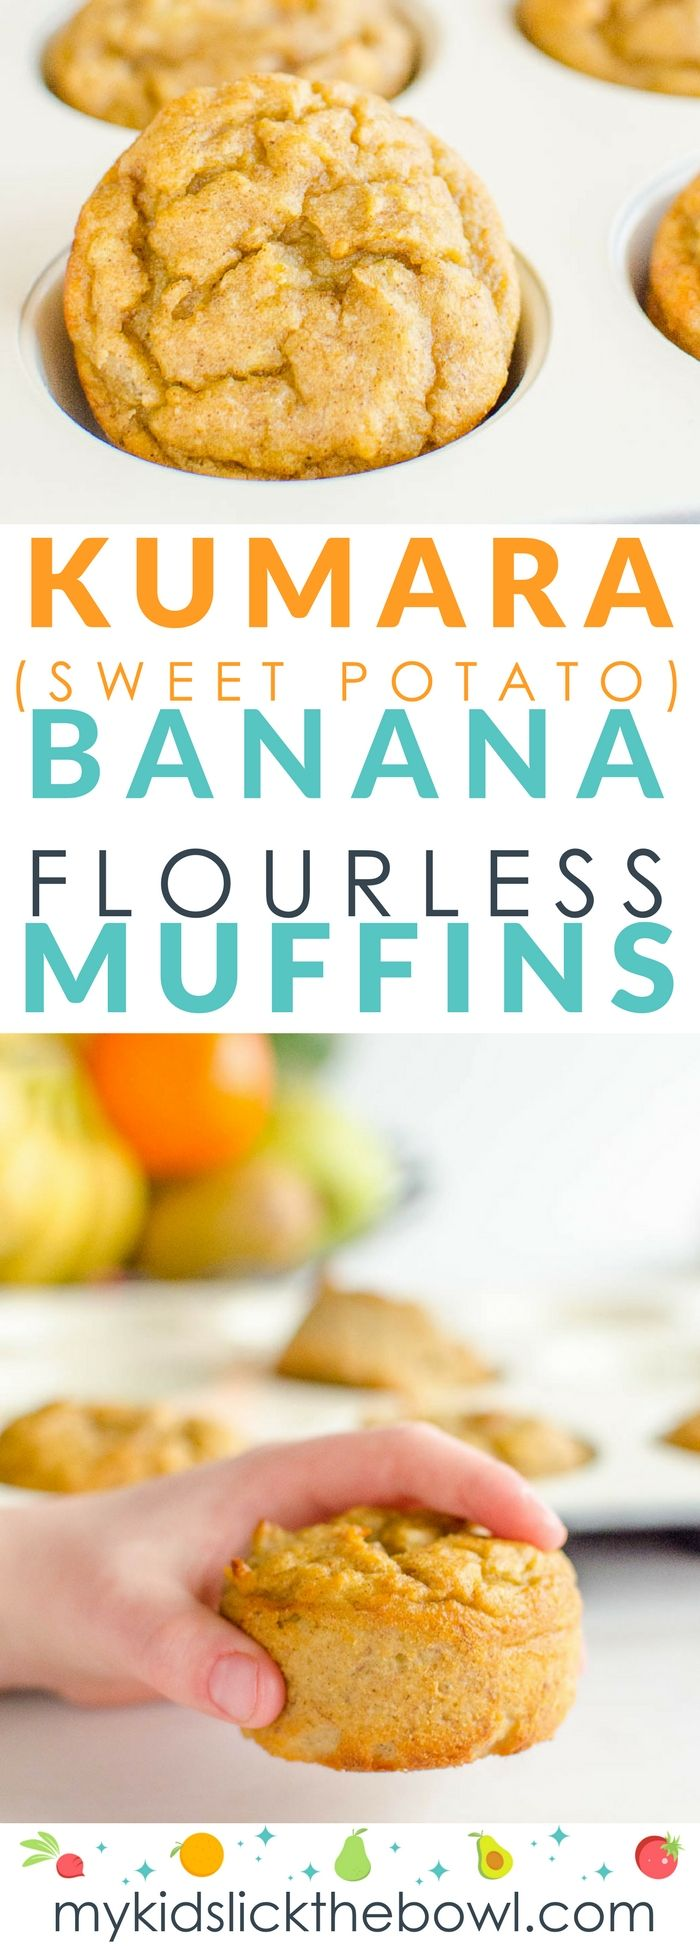 Kumara (Sweet Potato) Banana Muffins